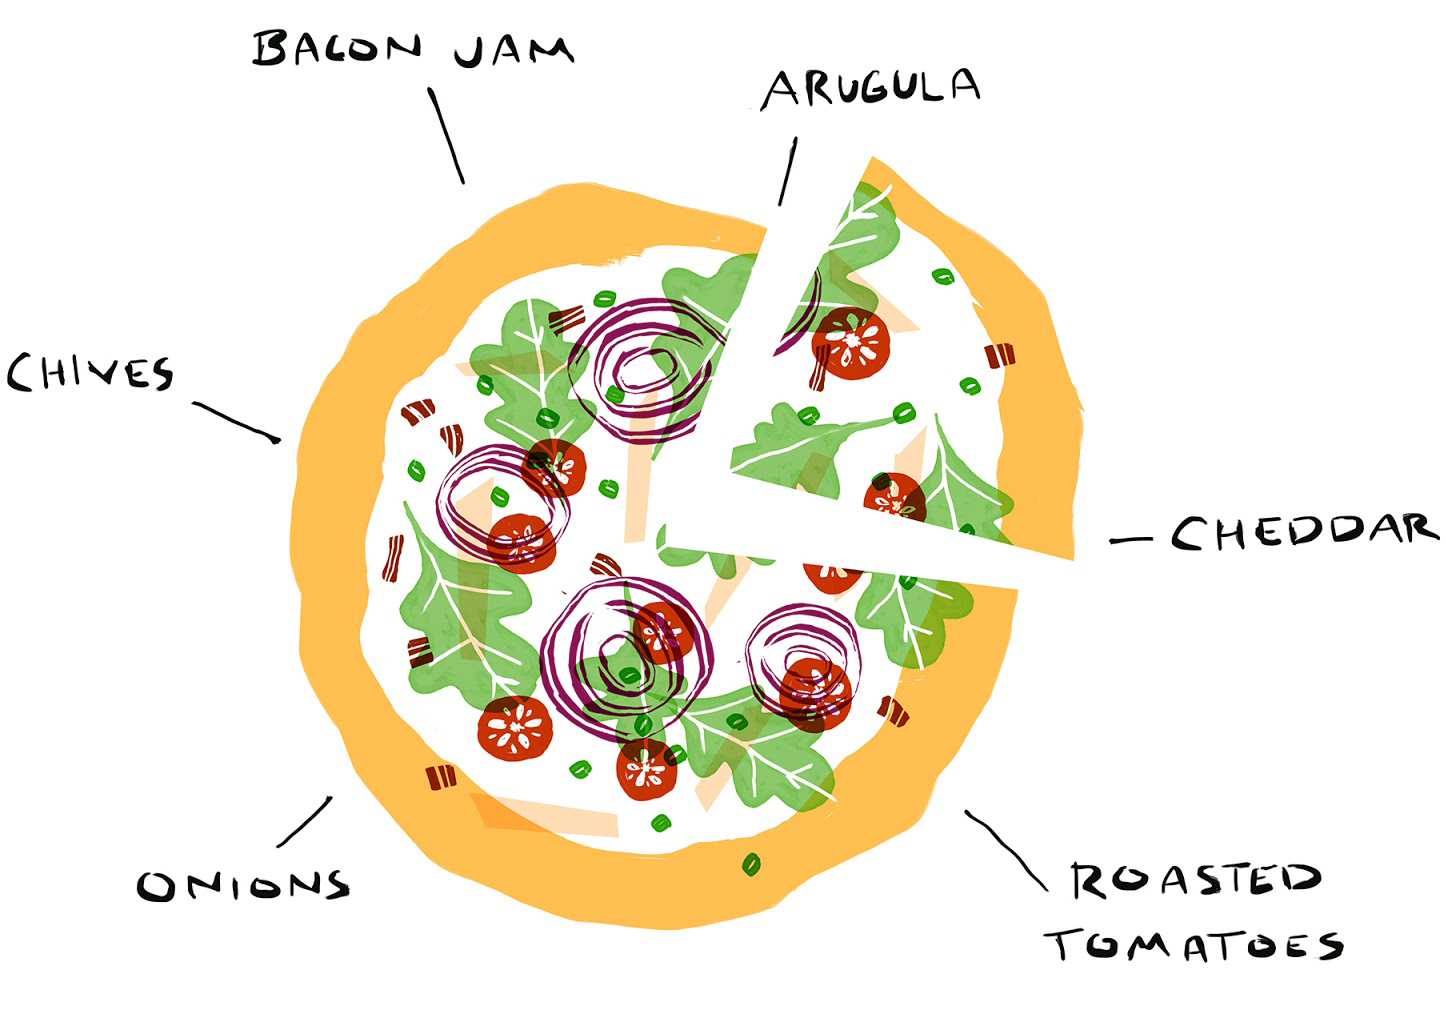 bacon jam pizza roasted tomatoes illustration